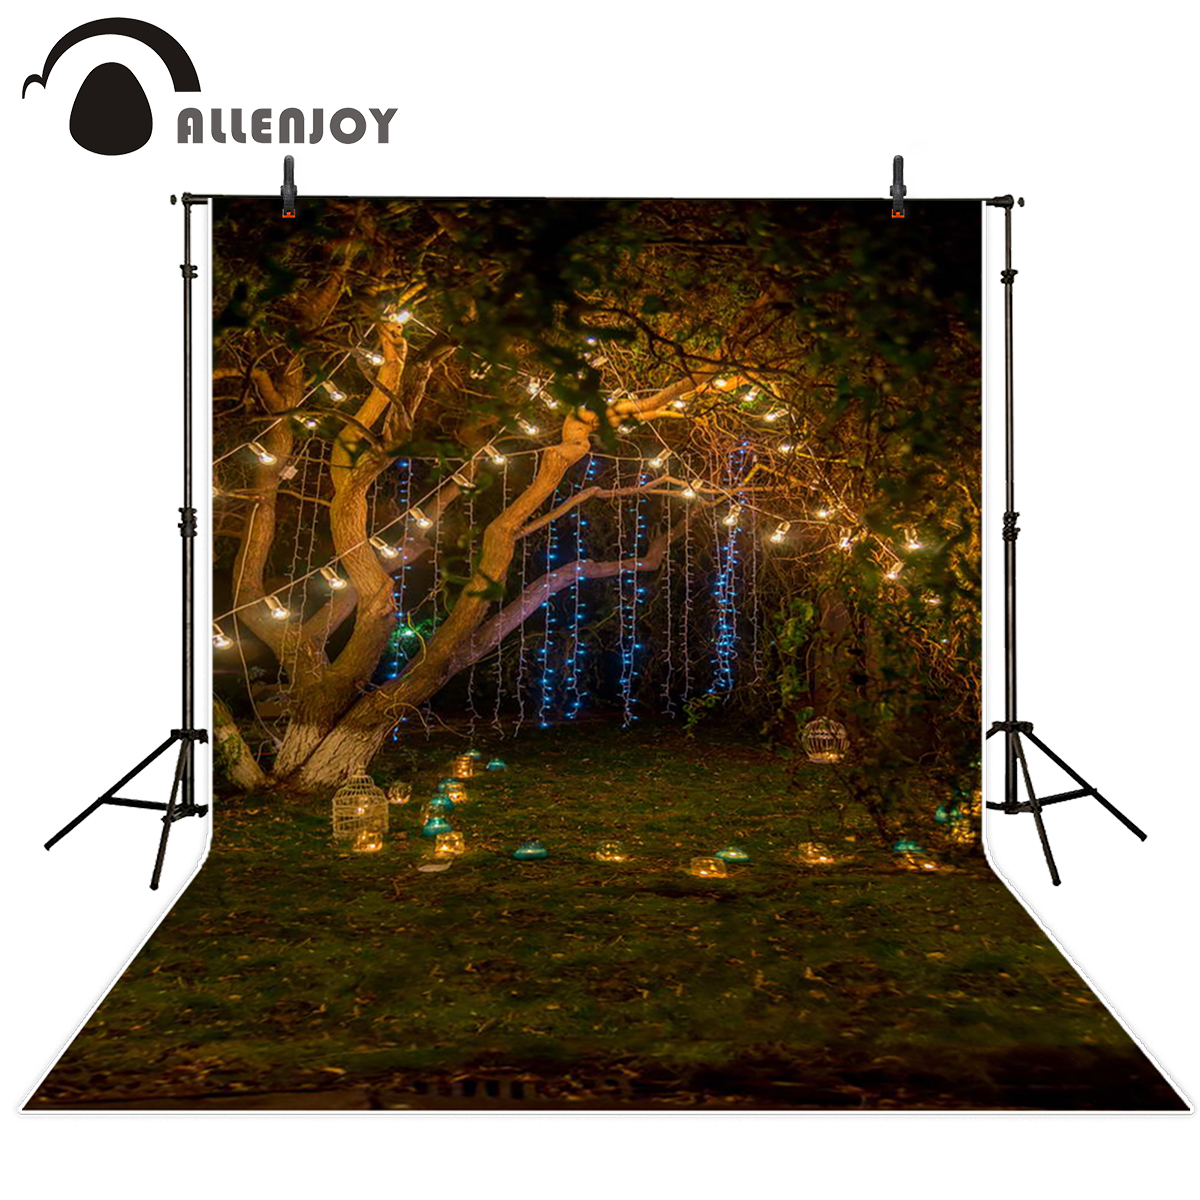 Allenjoy background for photo studio lantern meadow night party backdrop garden photography background fantasy backdrops allenjoy photo background photography backdrop book slate clouds newborn photographic picture for the studio 150cm